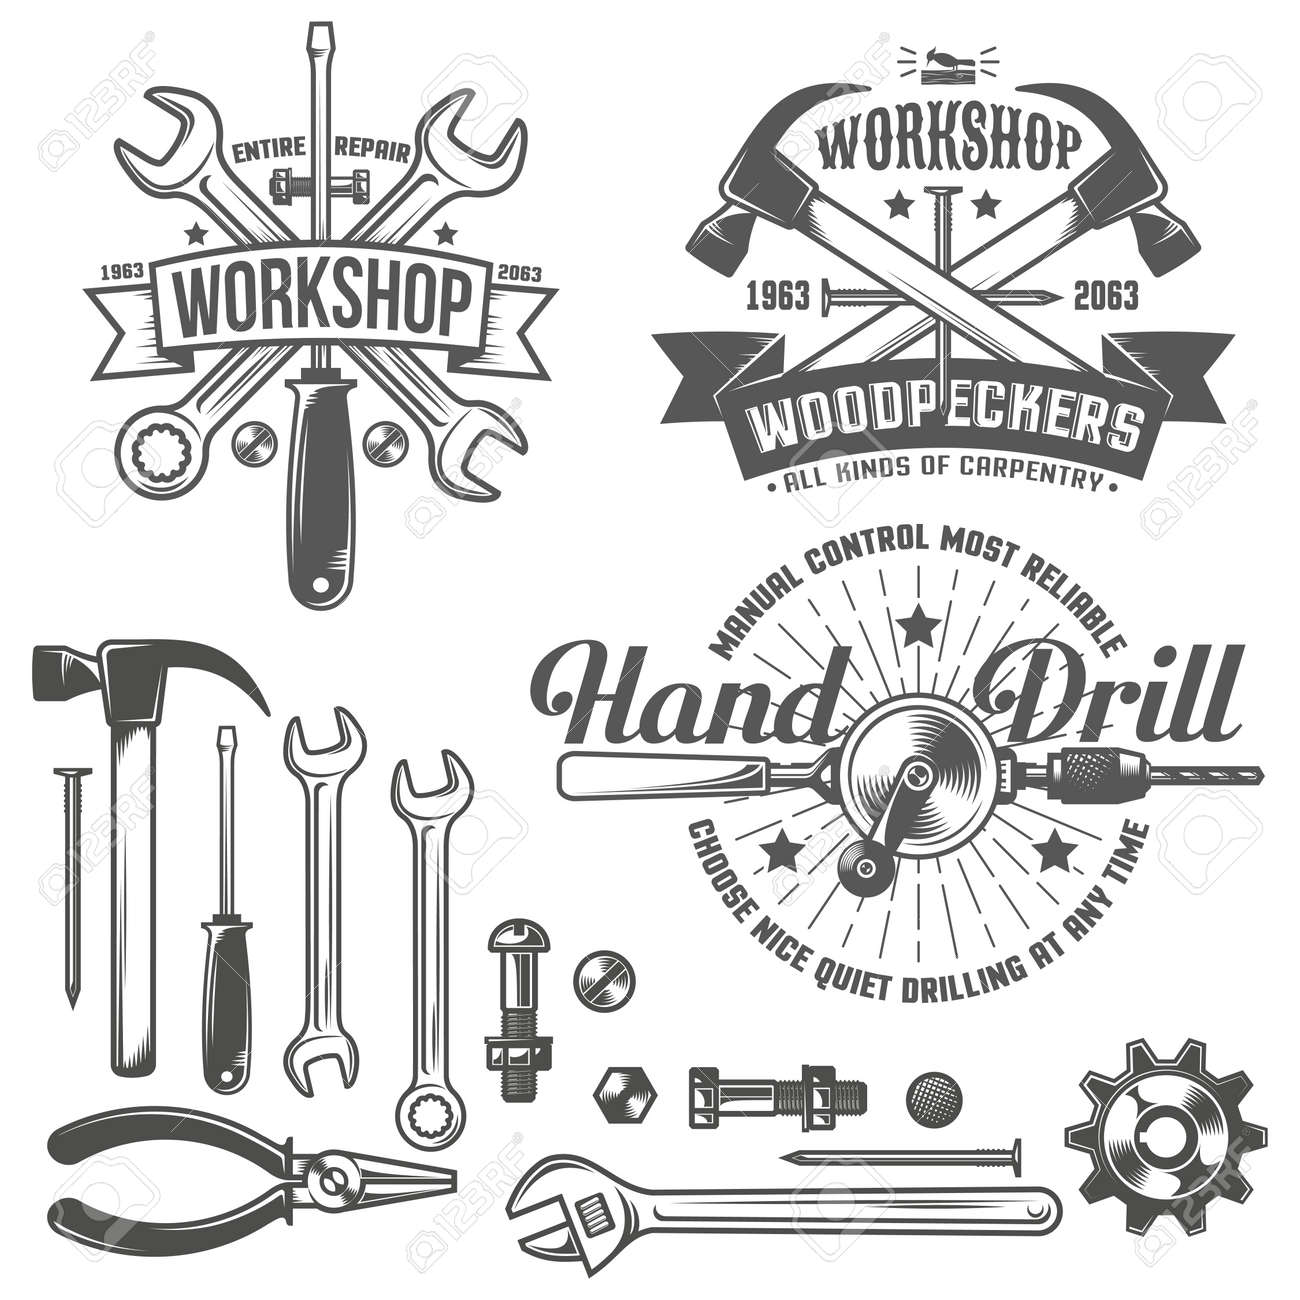 Vintage emblem repair workshop and tool shop in vintage style. Working tools. Text on a separate layer - easy to replace. Stock Vector - 55677324